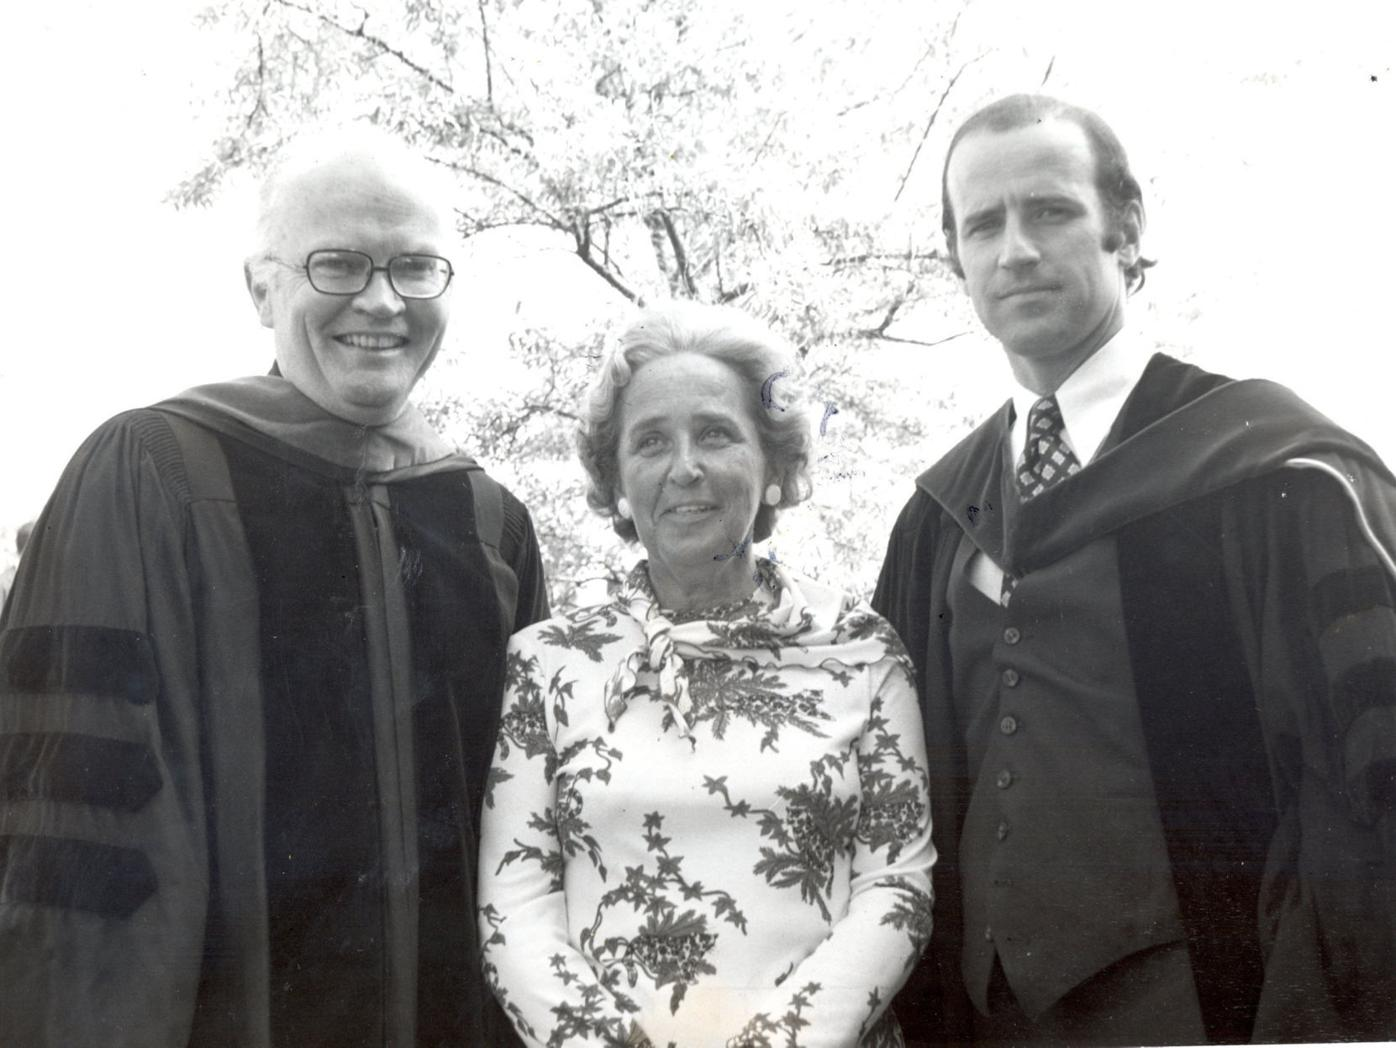 Almost 45 years ago, Biden stepped up when another president bowed out at U of S